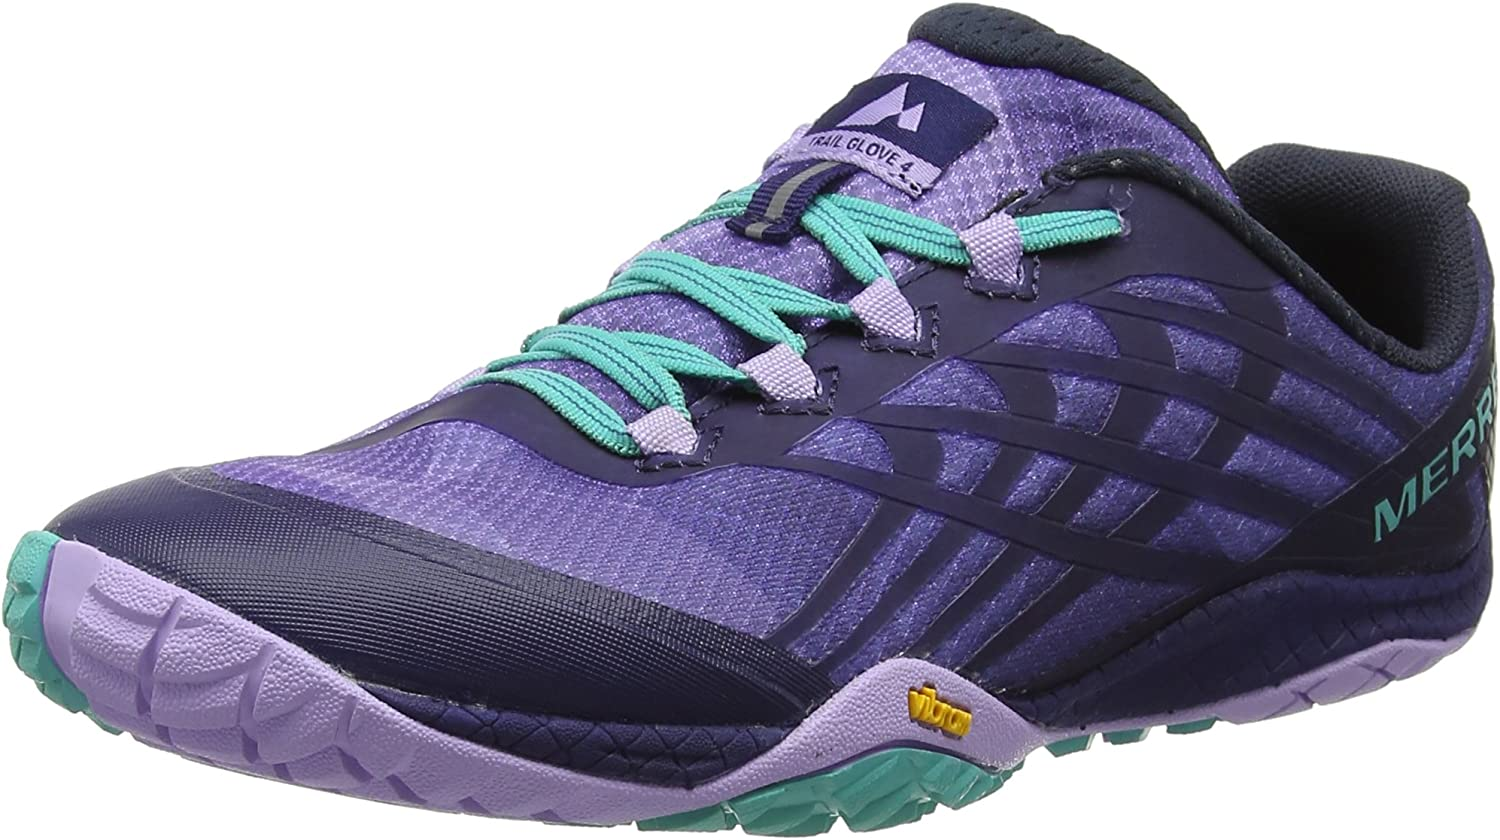 Merrell Women s Glove 4 Trail Runner